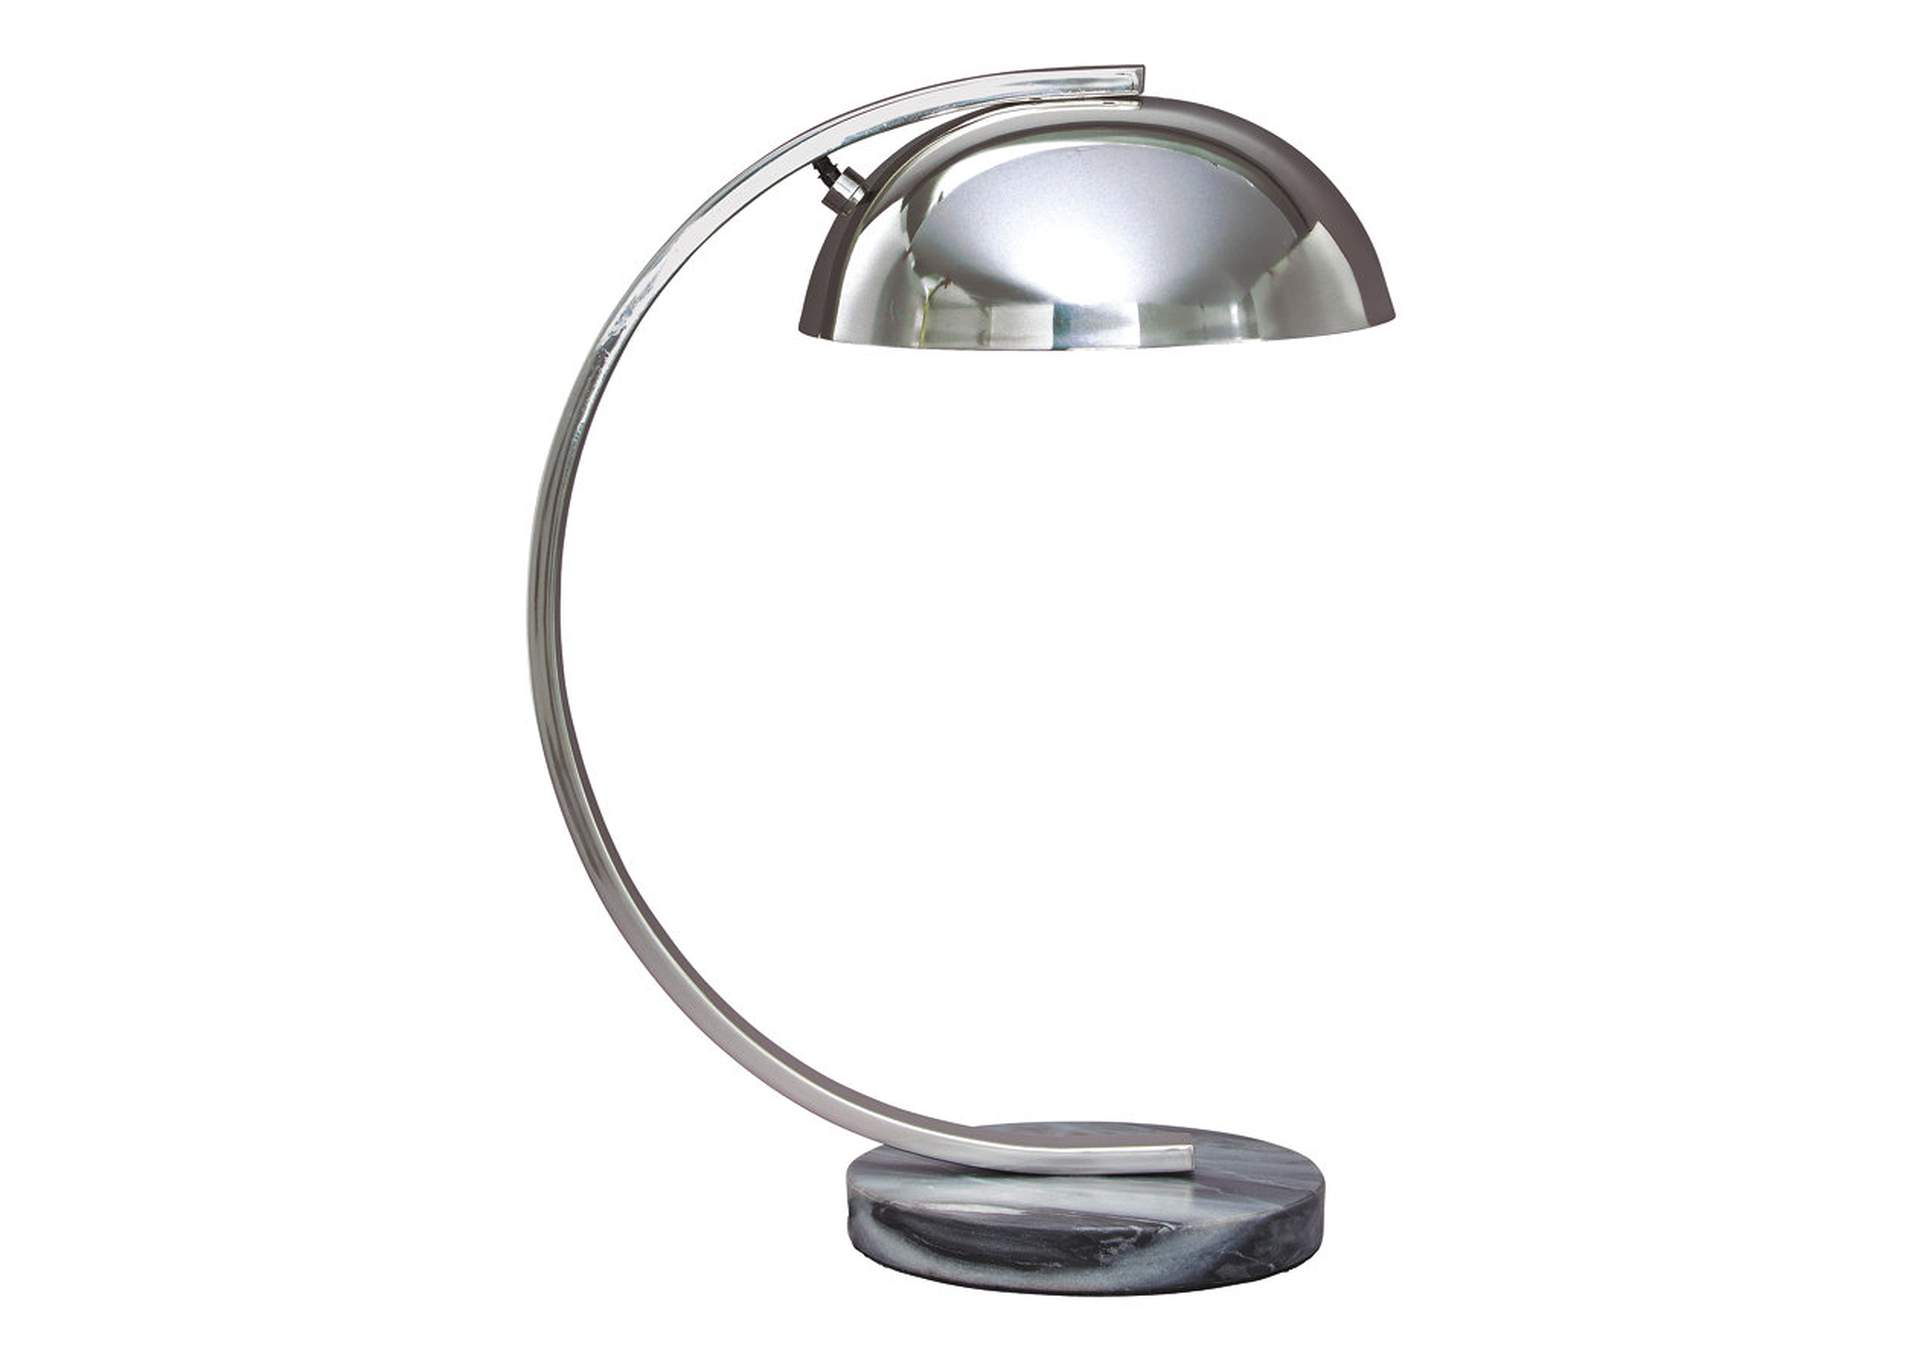 Haden Chrome Finish Metal Desk Lamp,Direct To Consumer Express